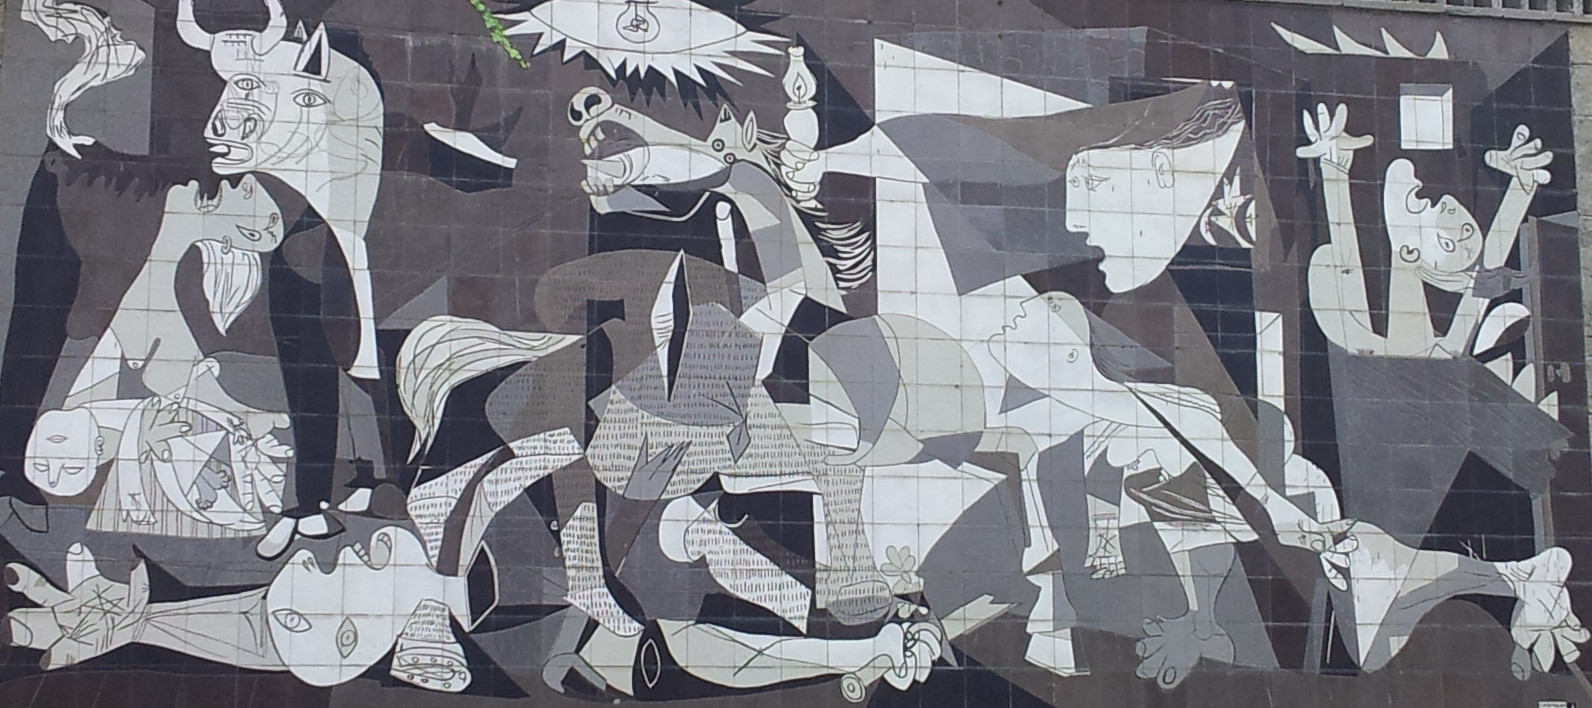 Aitor delgado basque private tour guide a tour to see the for Mural guernica